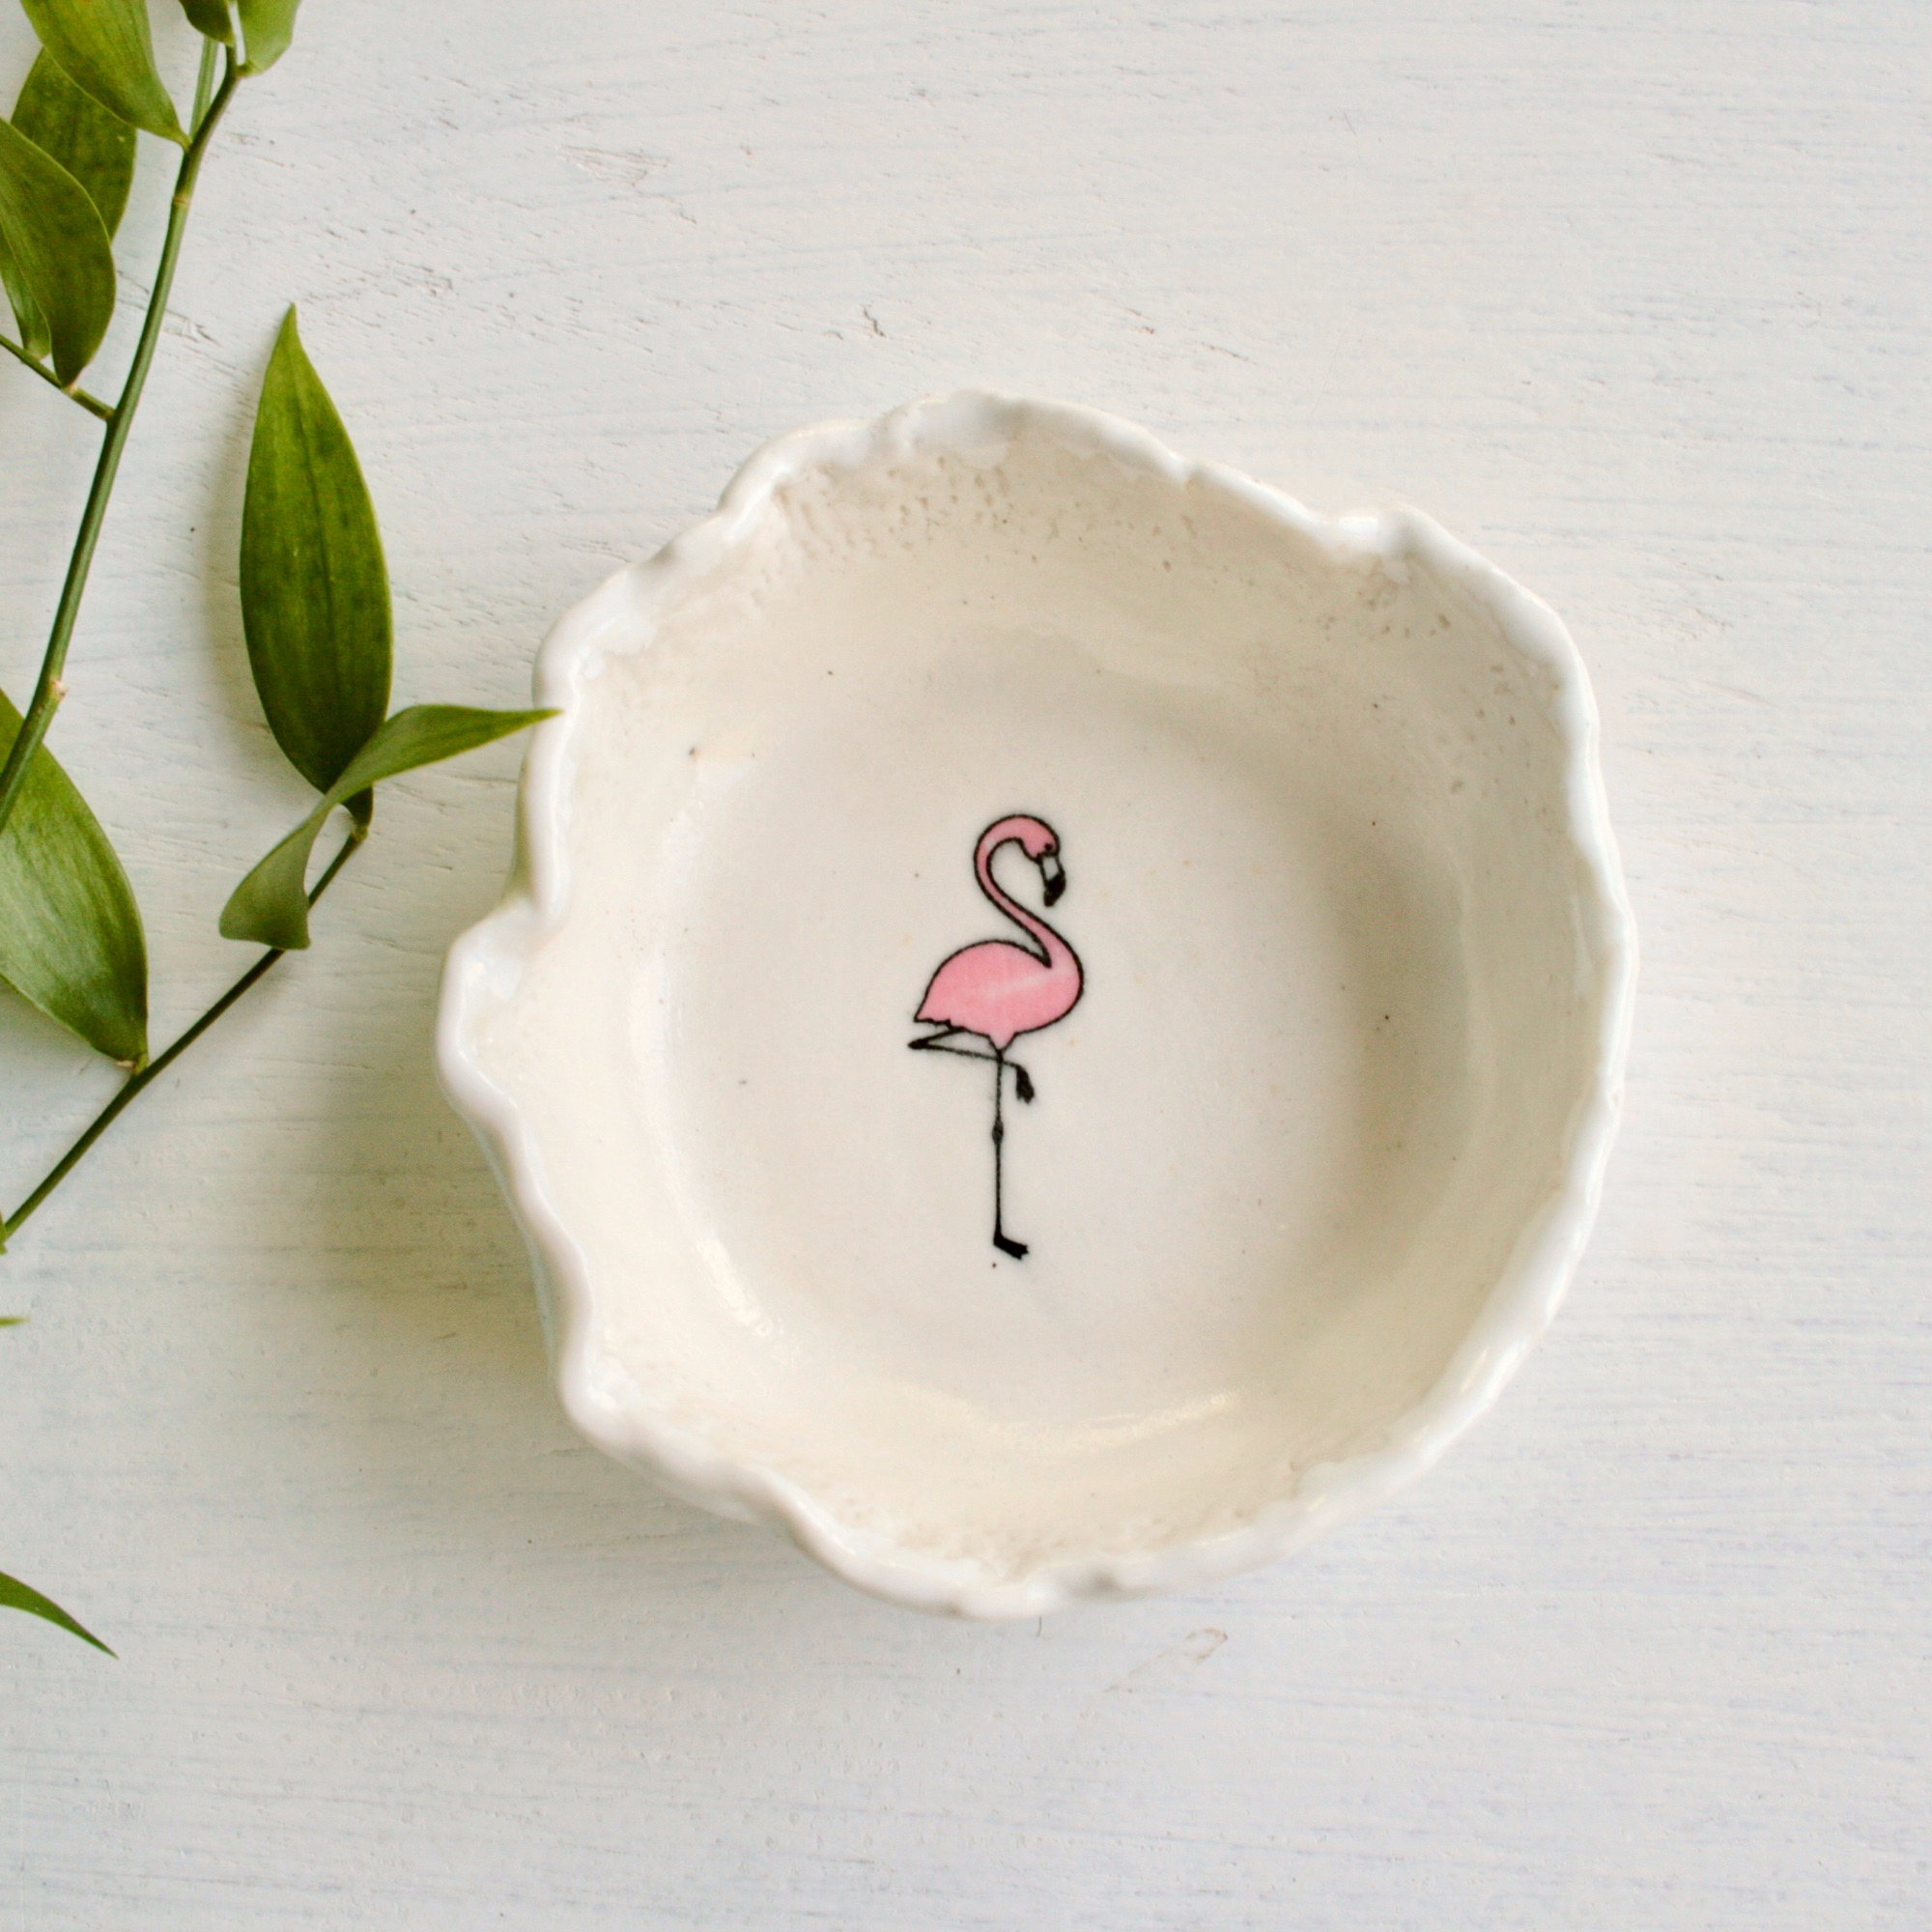 ceramic dish with flamingo design